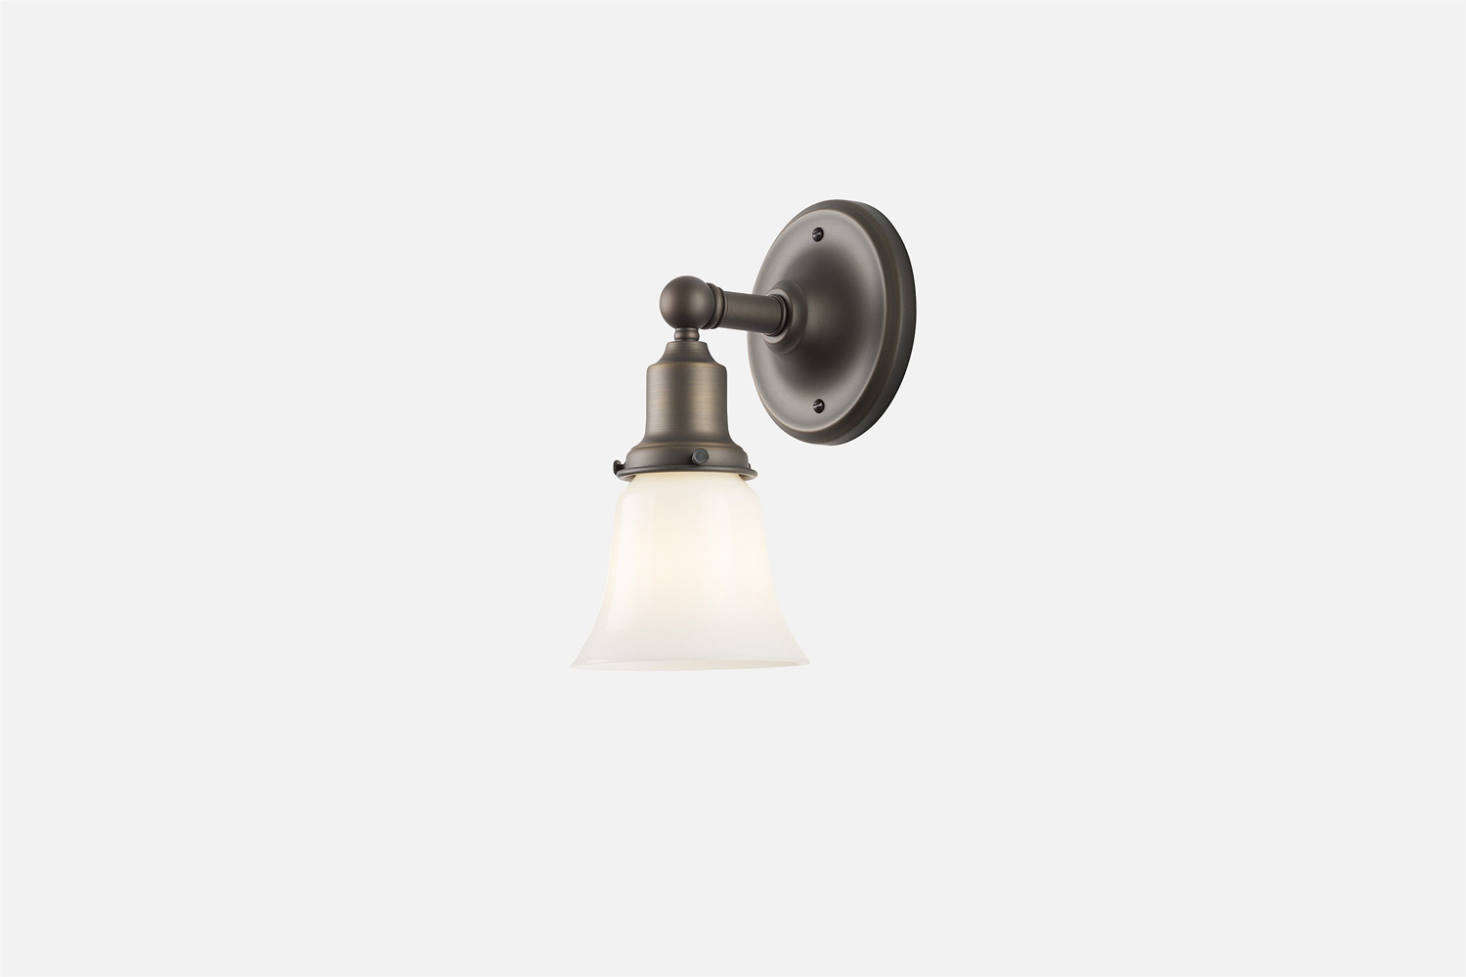 The Schoolhouse Irvine Single Sconce, shown in Matte Bronze, can be paired with any Schoolhouse lampshade; $169. It's an off-the-shelf version of the vintage wall sconce sourced for the kitchen. Another style is the Emory Sconce also from Schoolhouse.